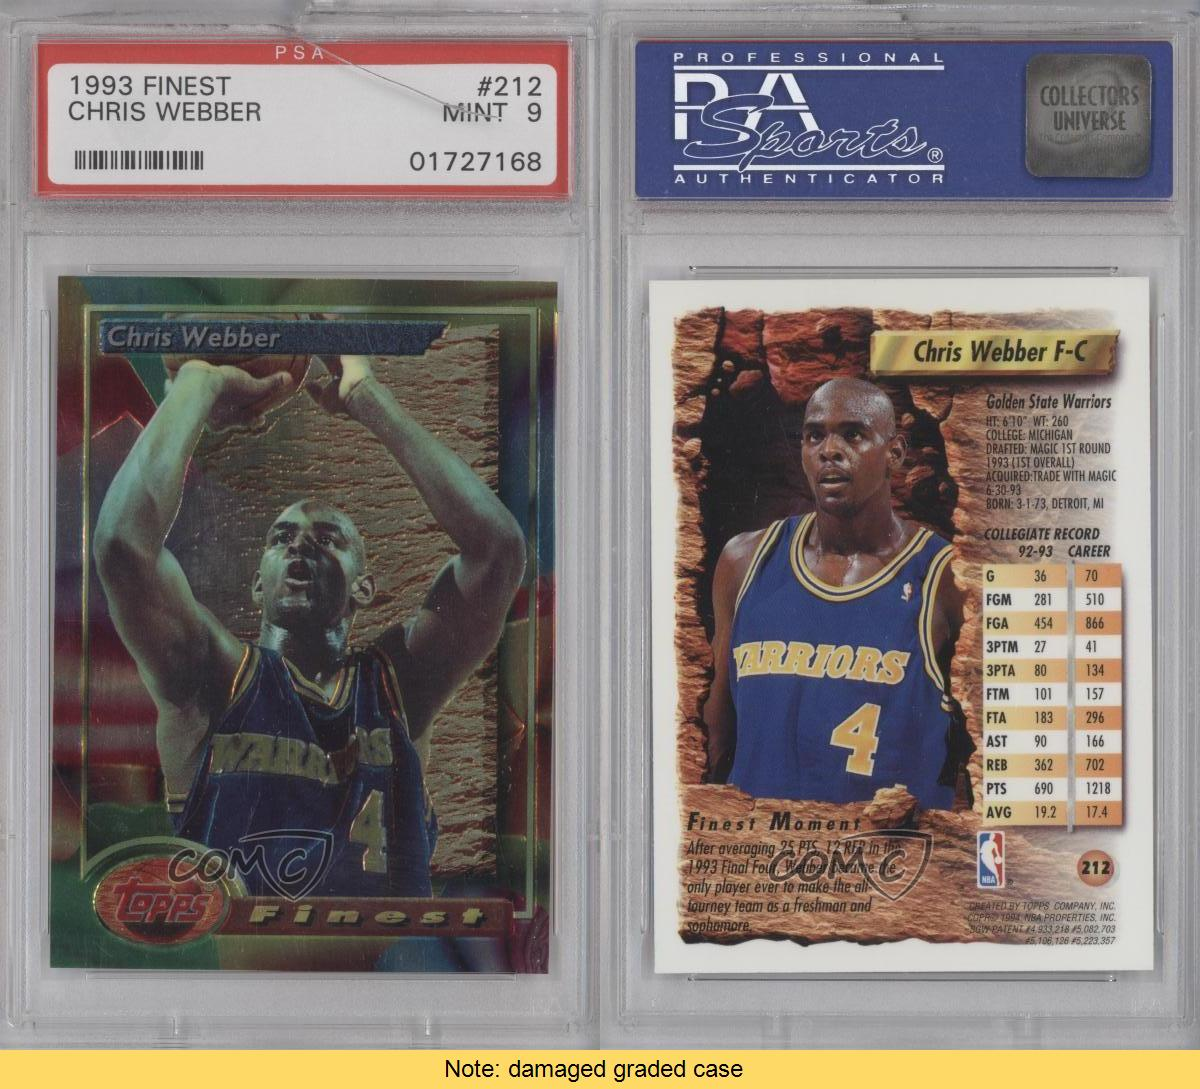 1993-94 Topps Finest 212 Chris Webber PSA 9 Golden State